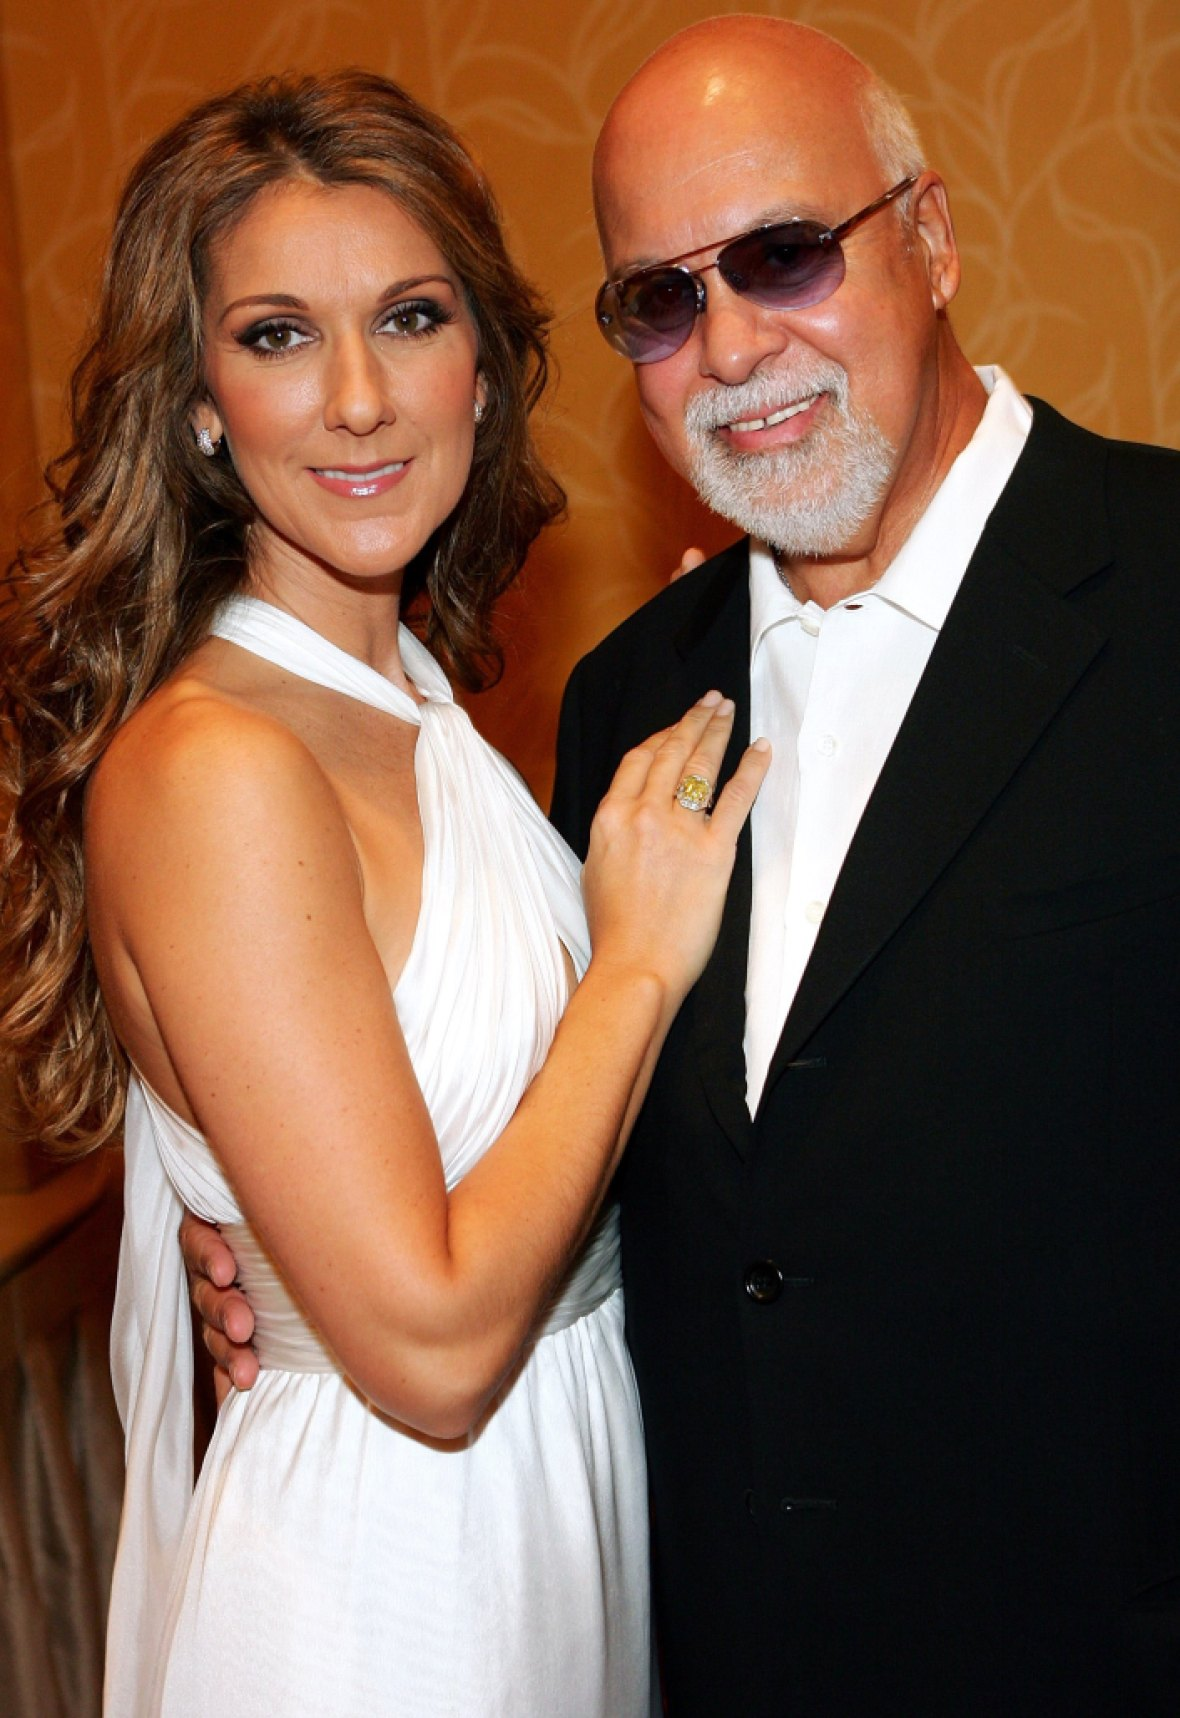 celine dion and her husband getty images